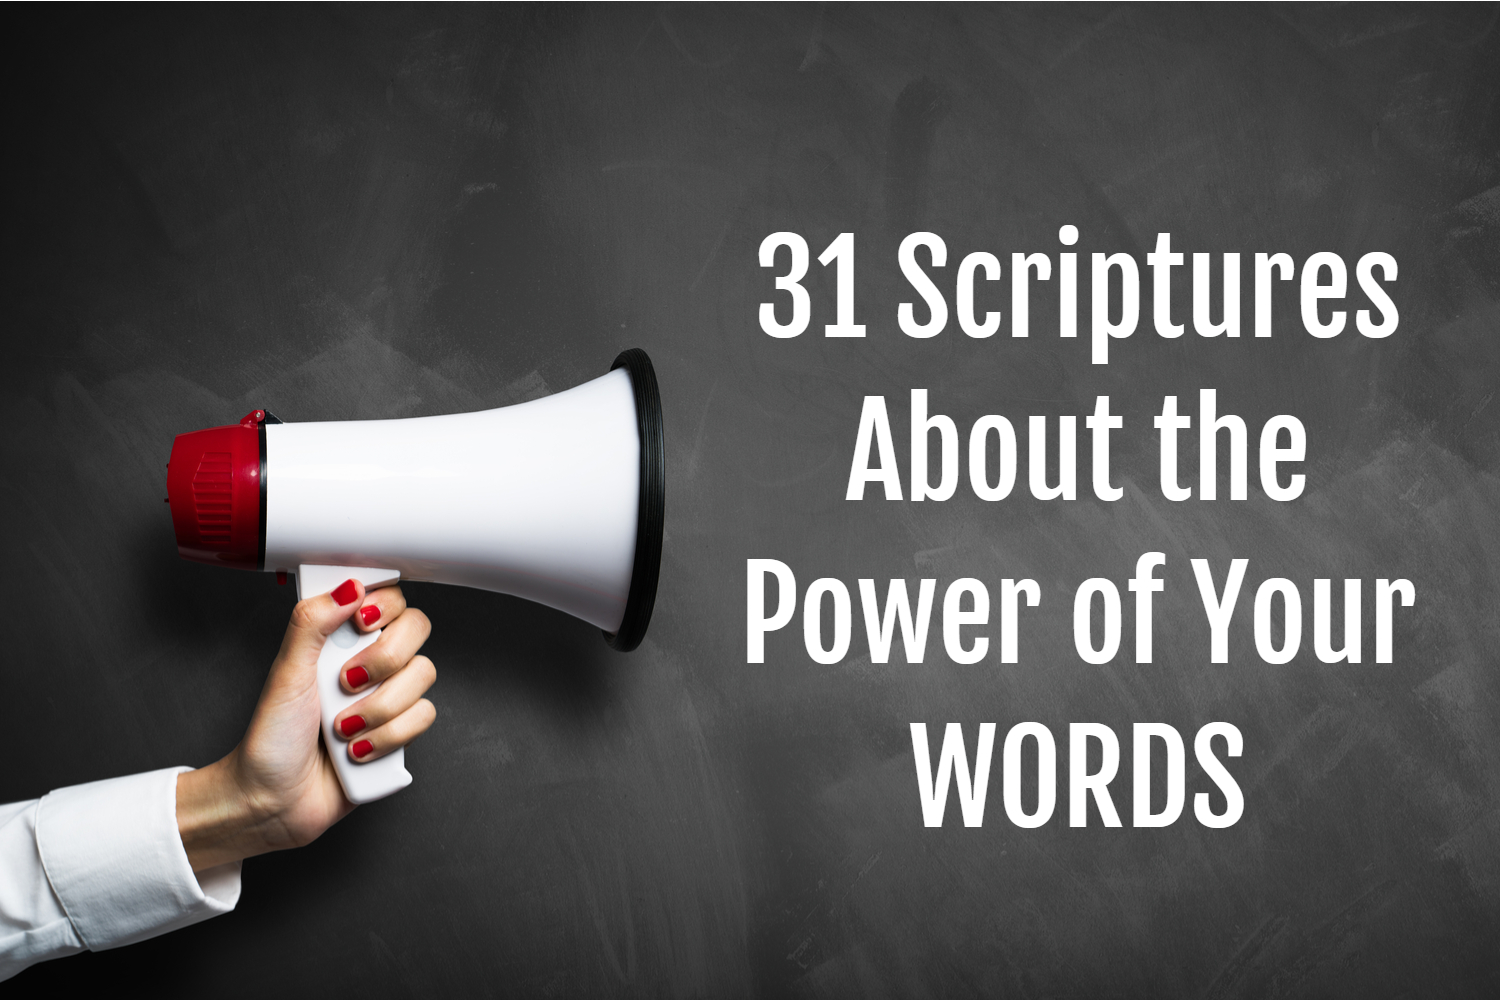 31 Scriptures About the Power of Your Words | Kenneth Copeland